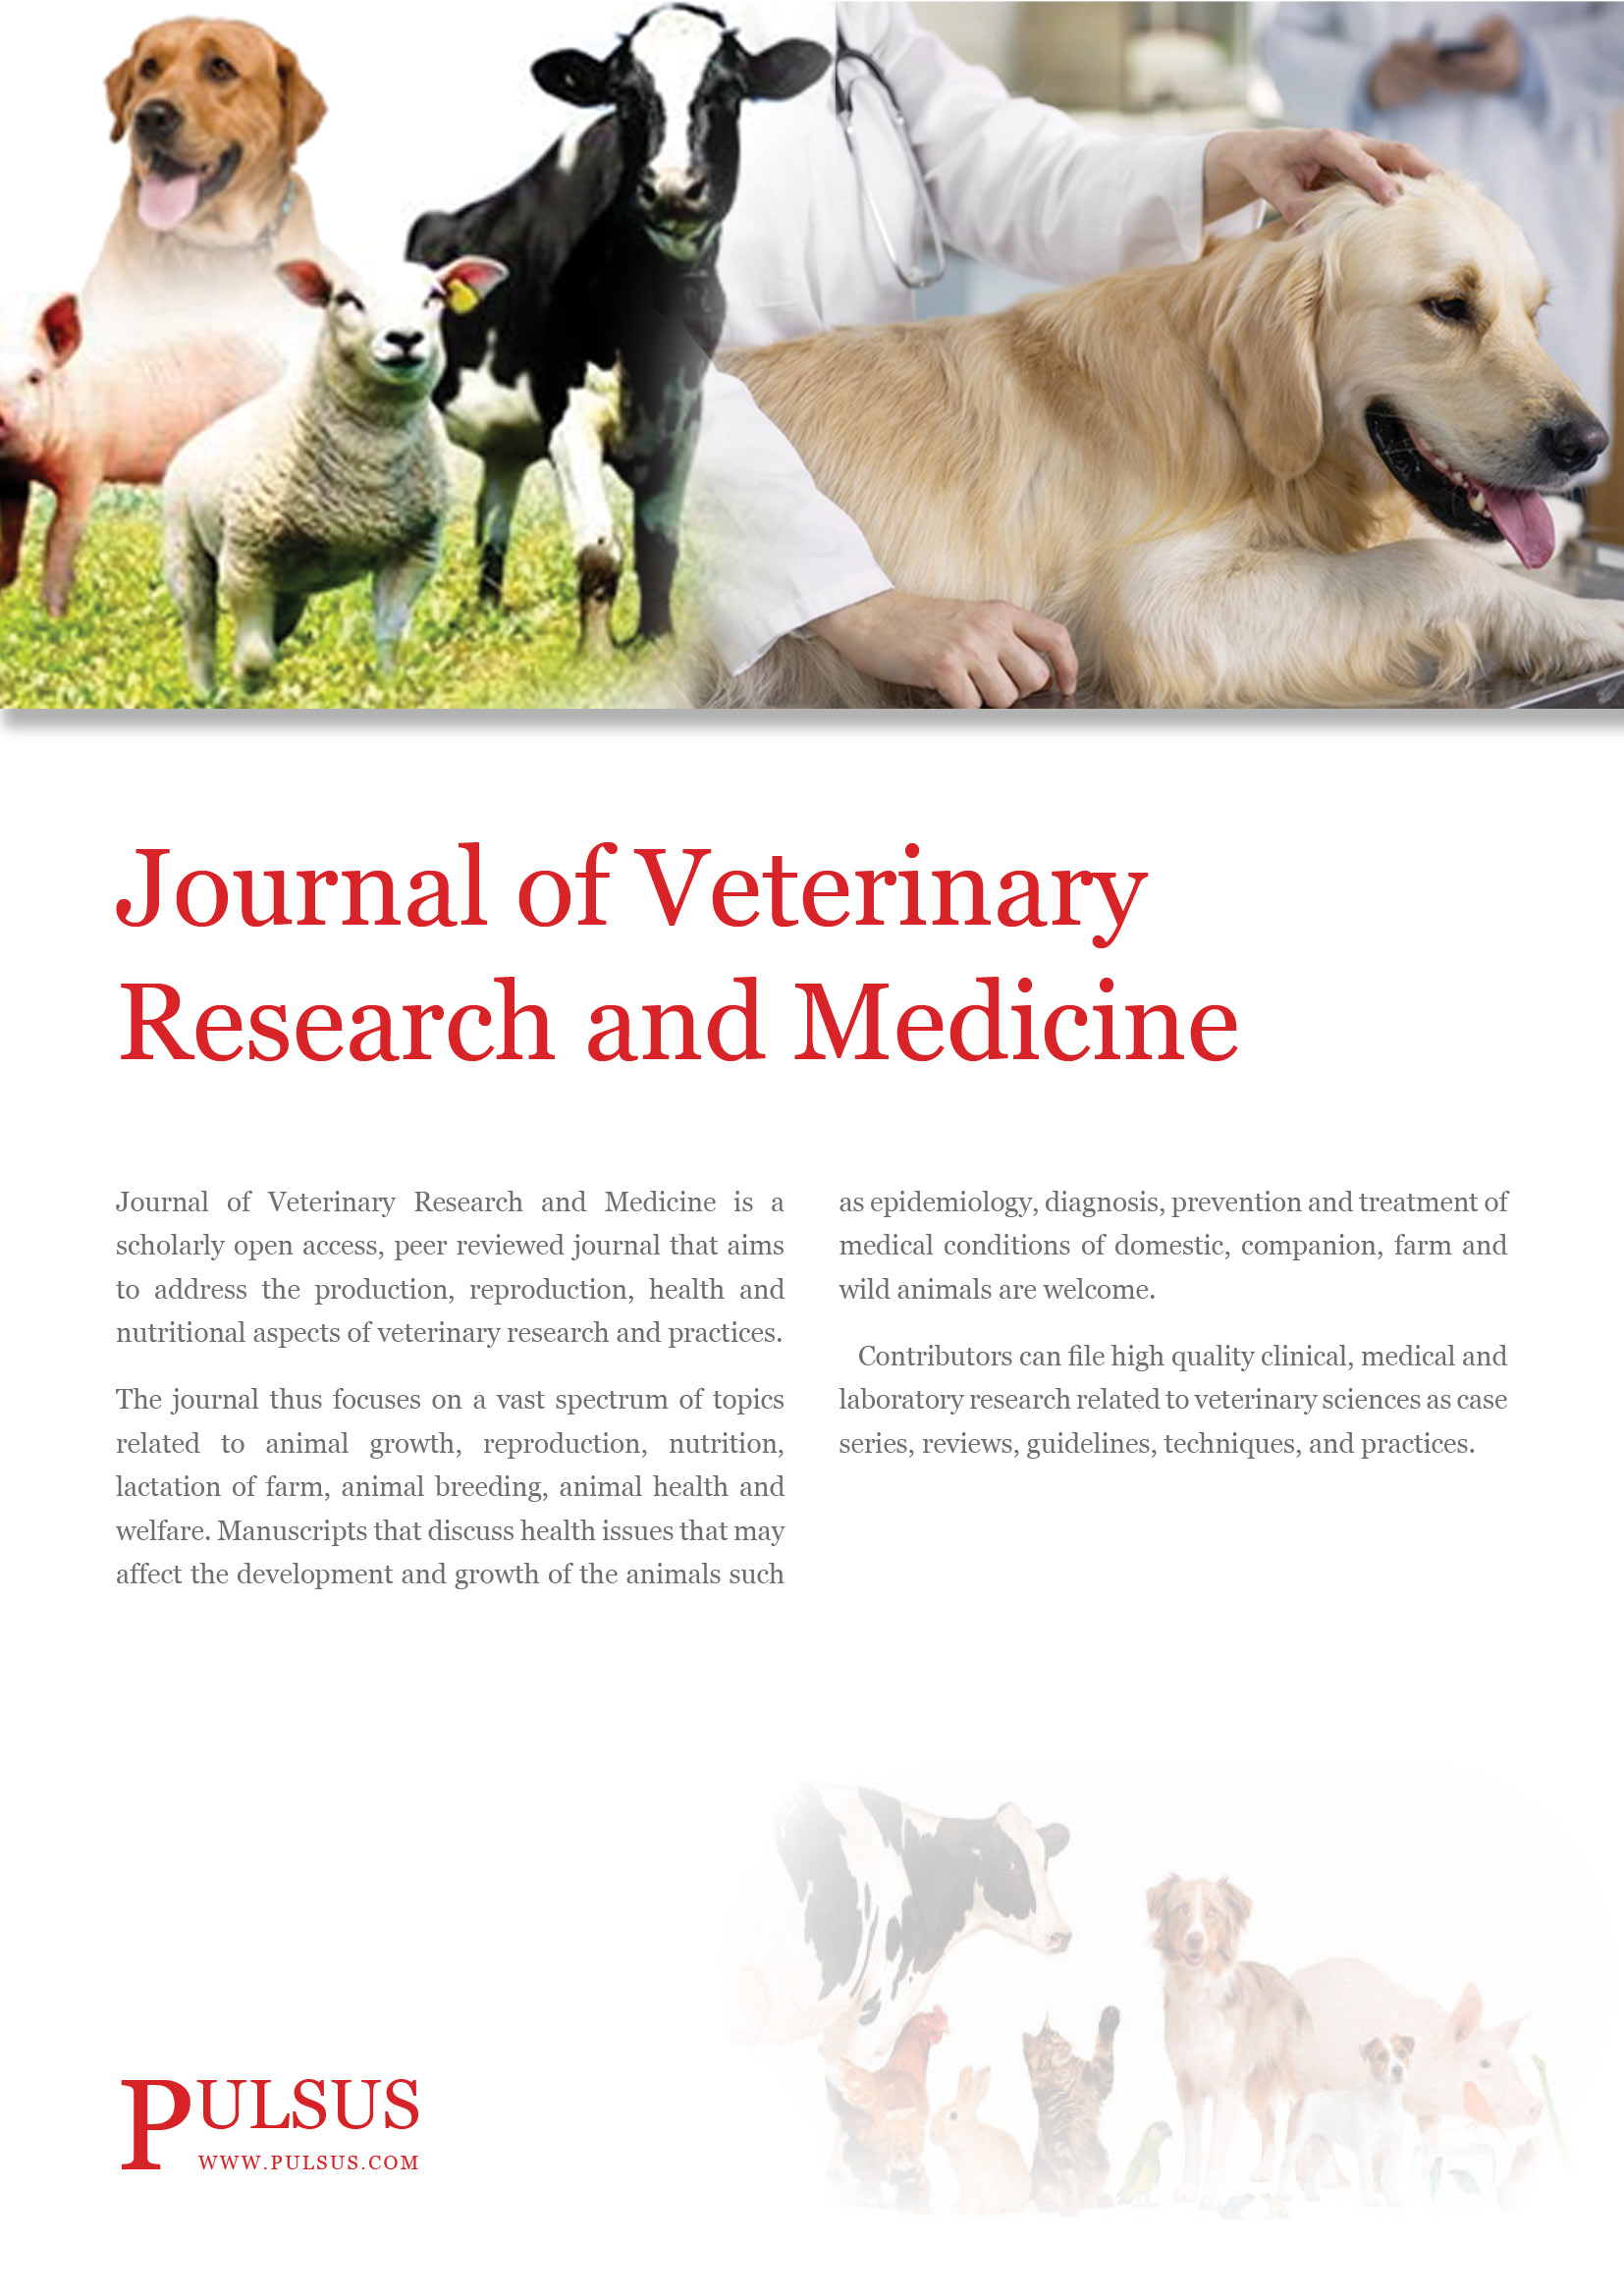 Journal of Veterinary Research and Medicine